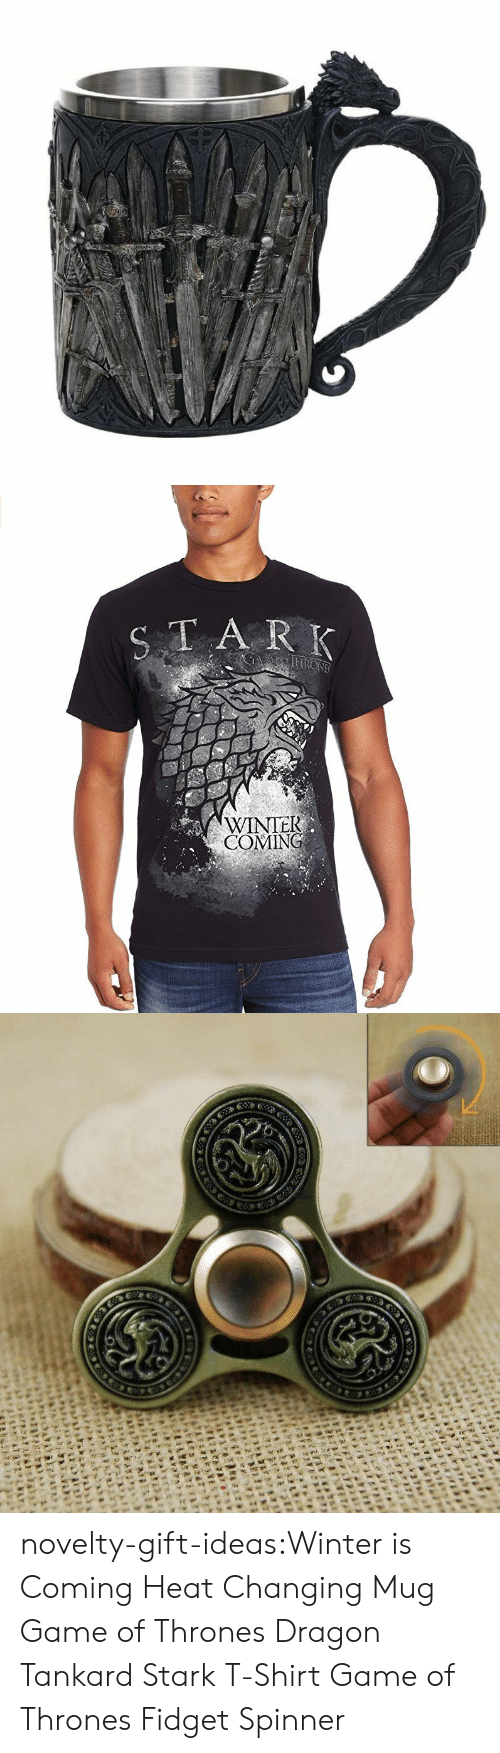 winter is coming: TA R K  WINTEK  COMING novelty-gift-ideas:Winter is Coming Heat Changing Mug  Game of Thrones Dragon Tankard    Stark T-ShirtGame of Thrones Fidget Spinner